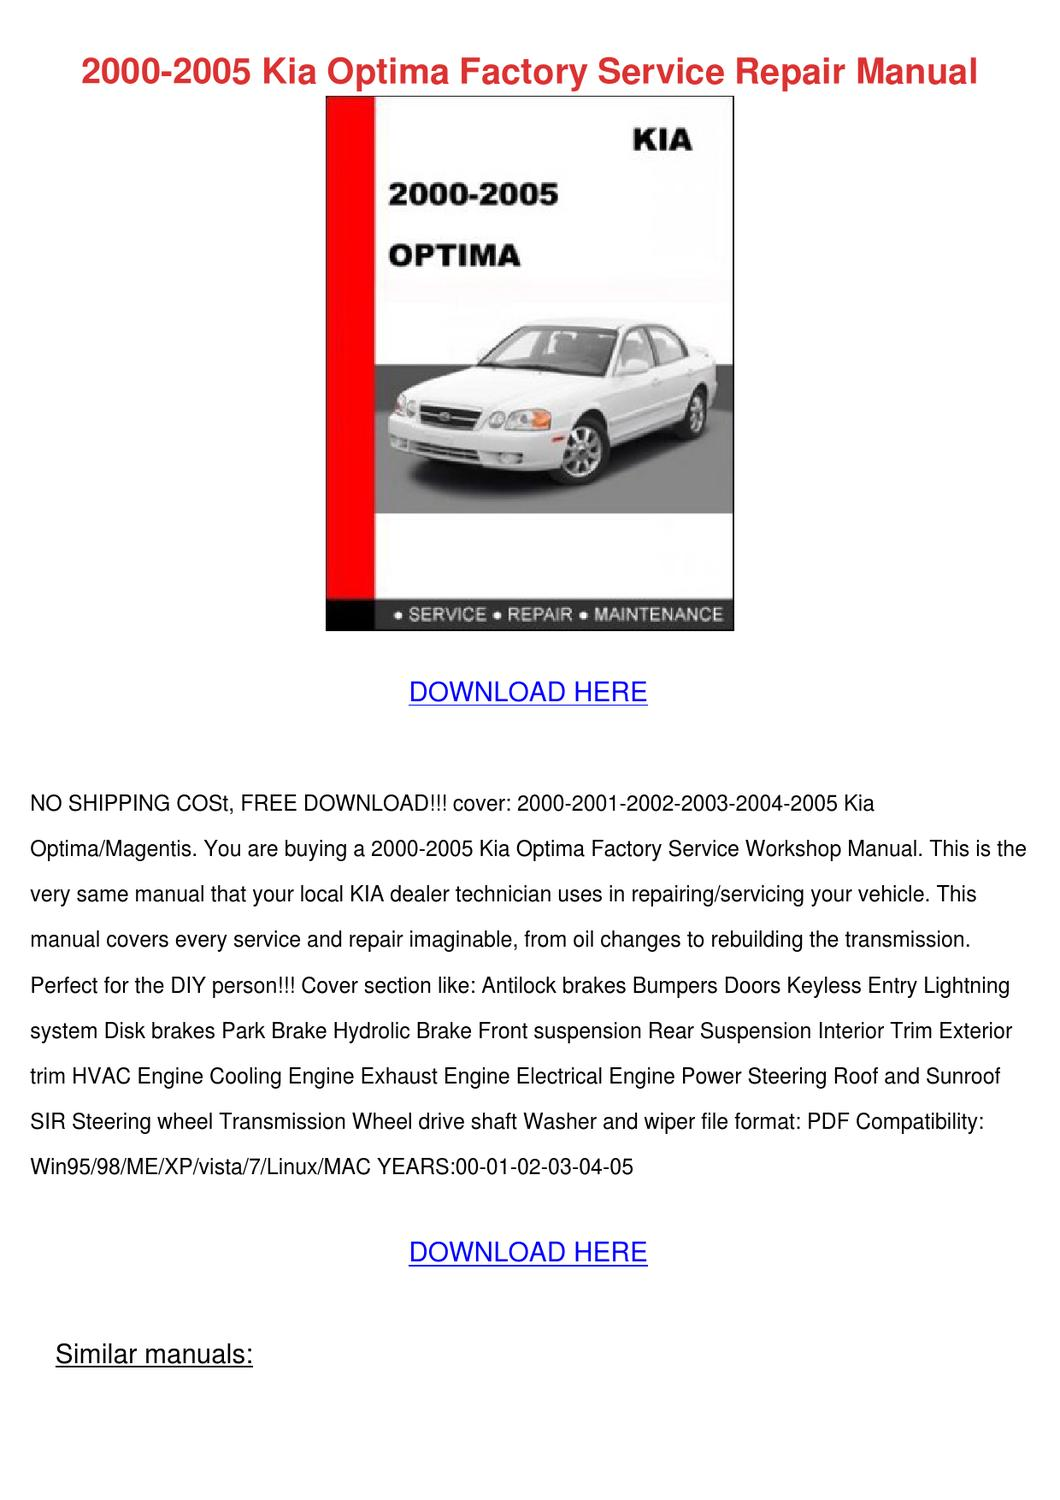 2005kia Optima manual